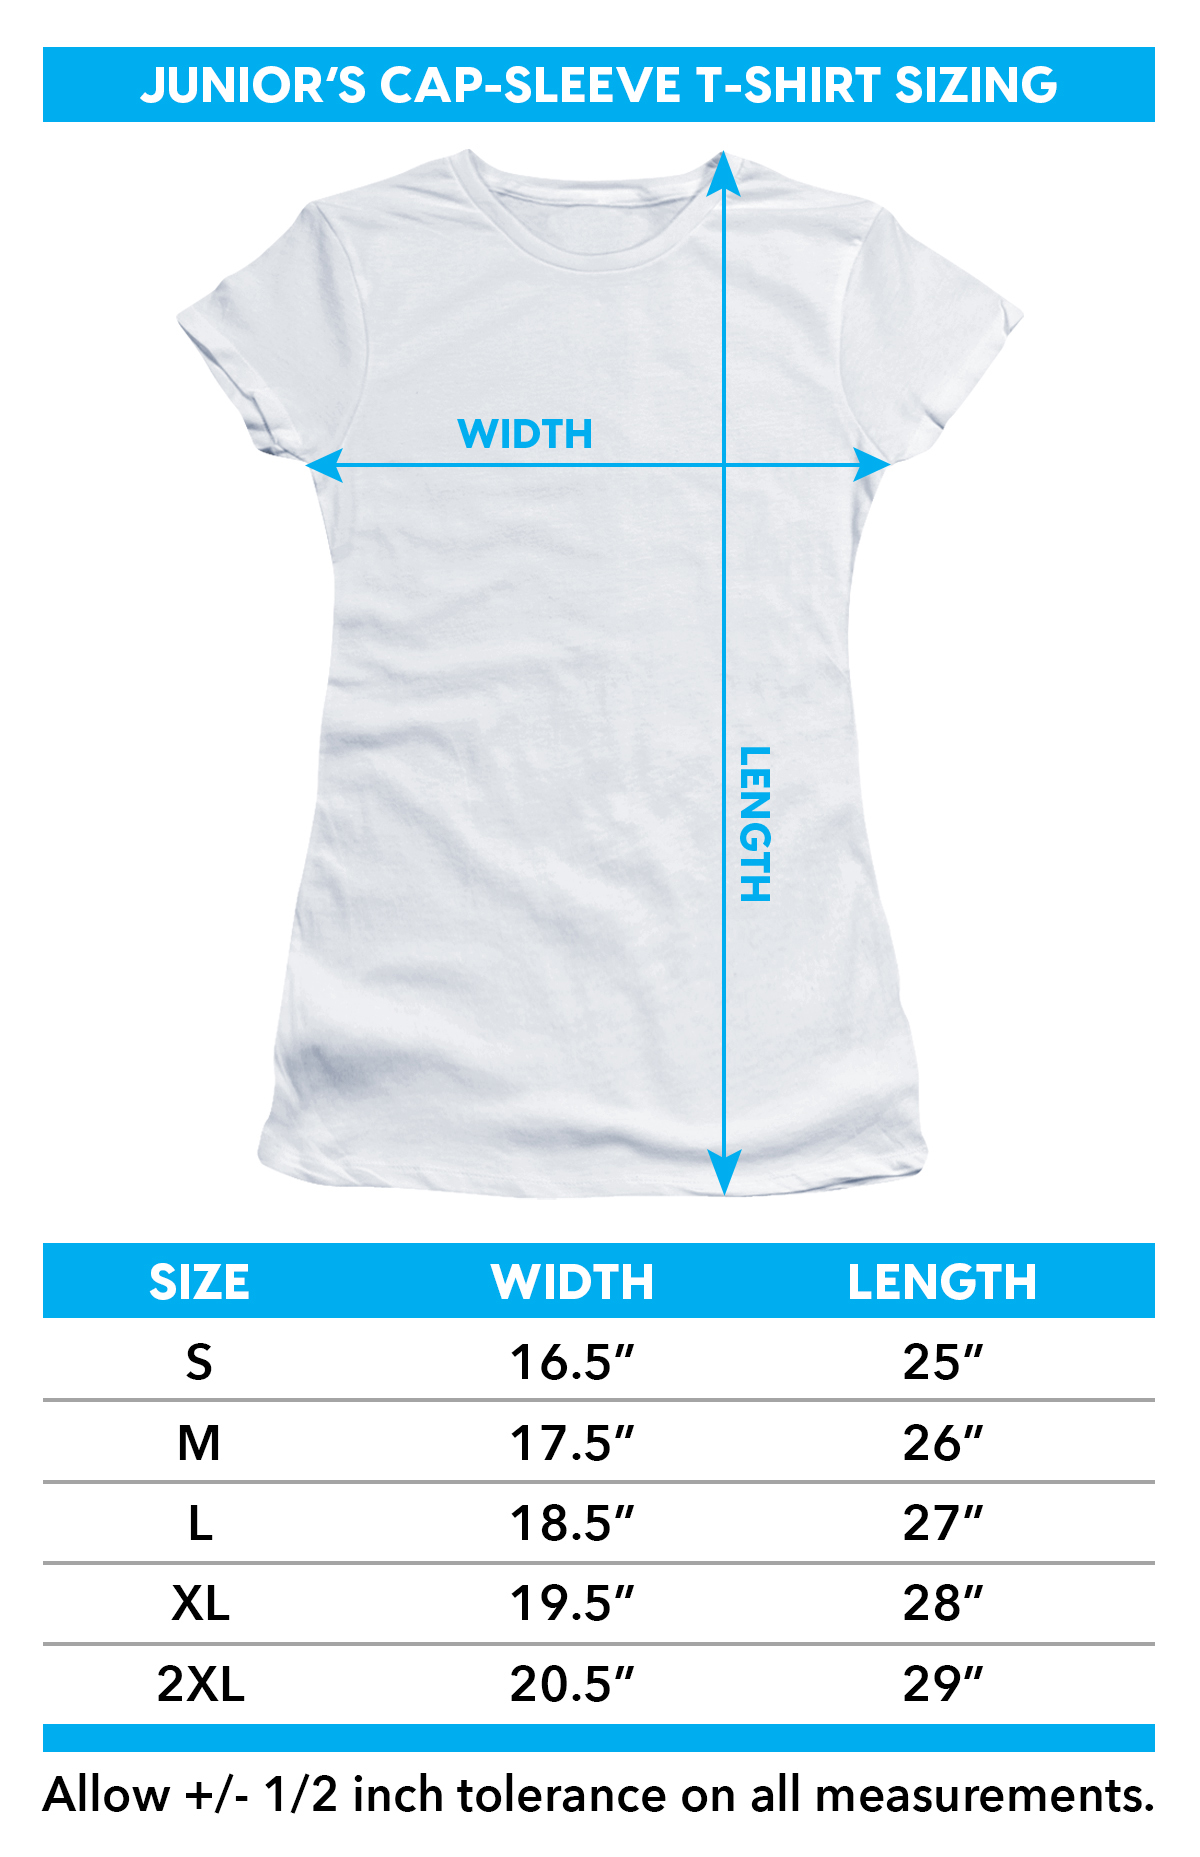 Girls sizing chart for Justified Girls T-Shirt - Ink Washed TRV-SONYT221-JS